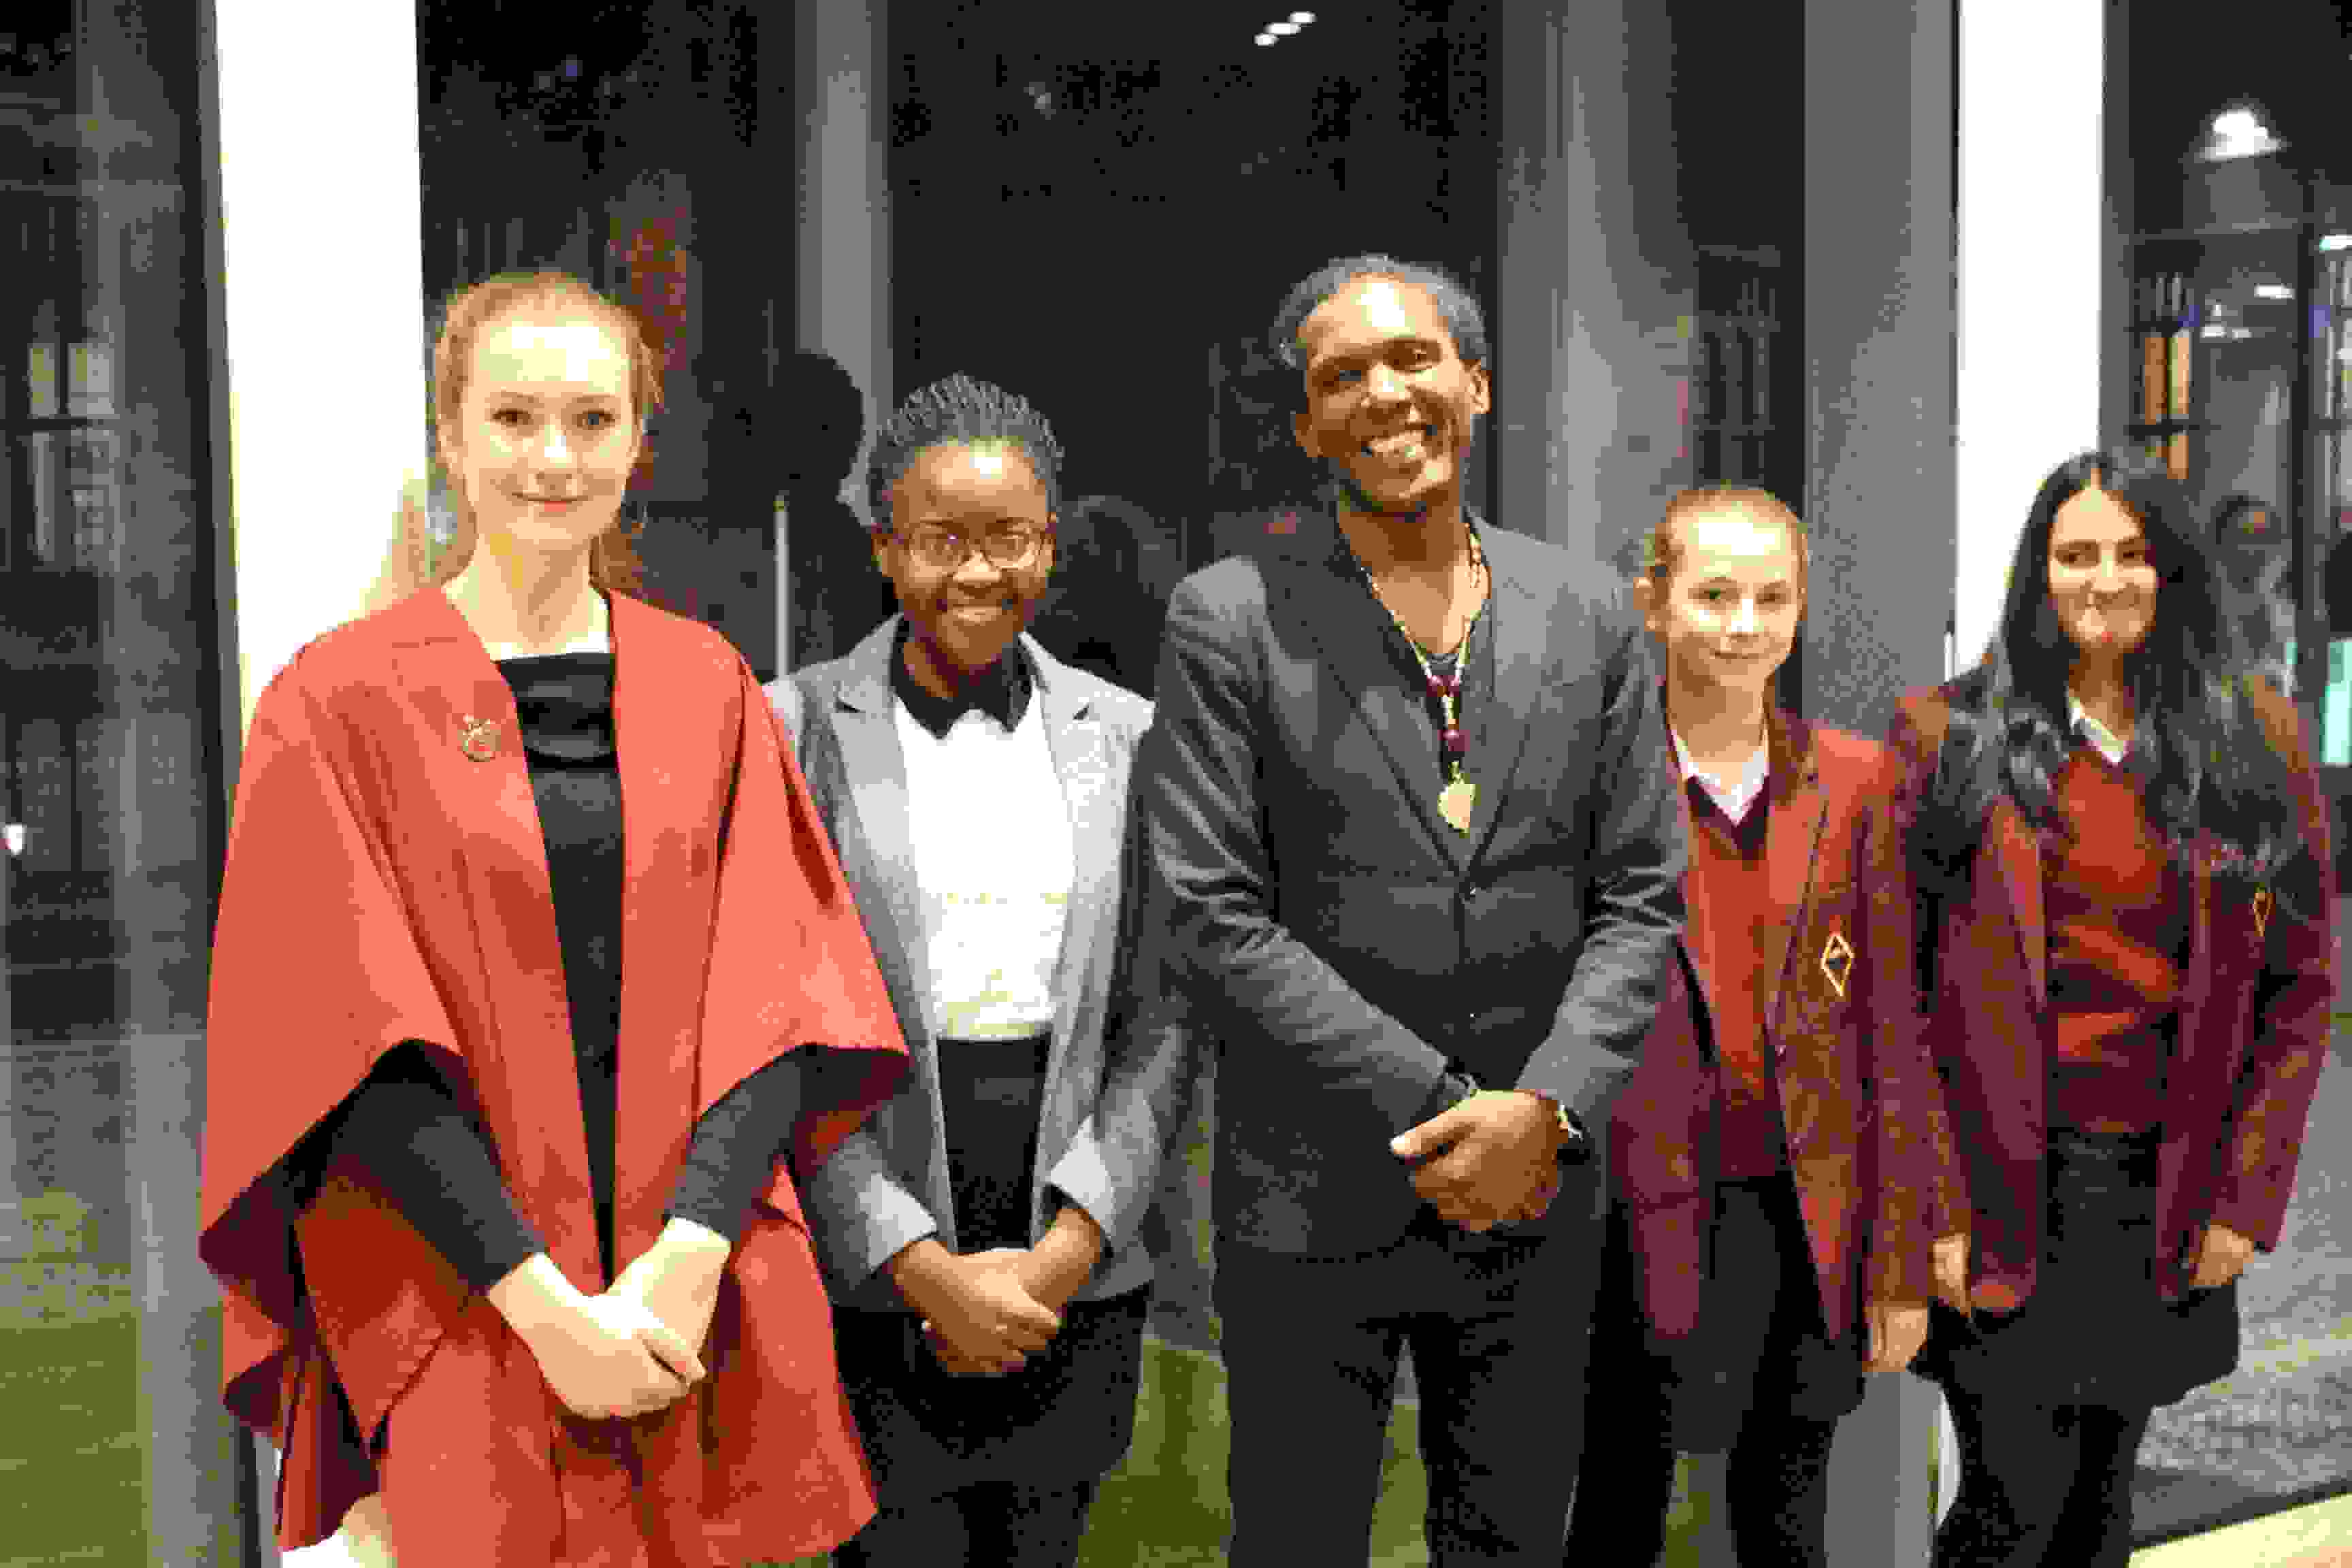 Lemn Sissay with pupils